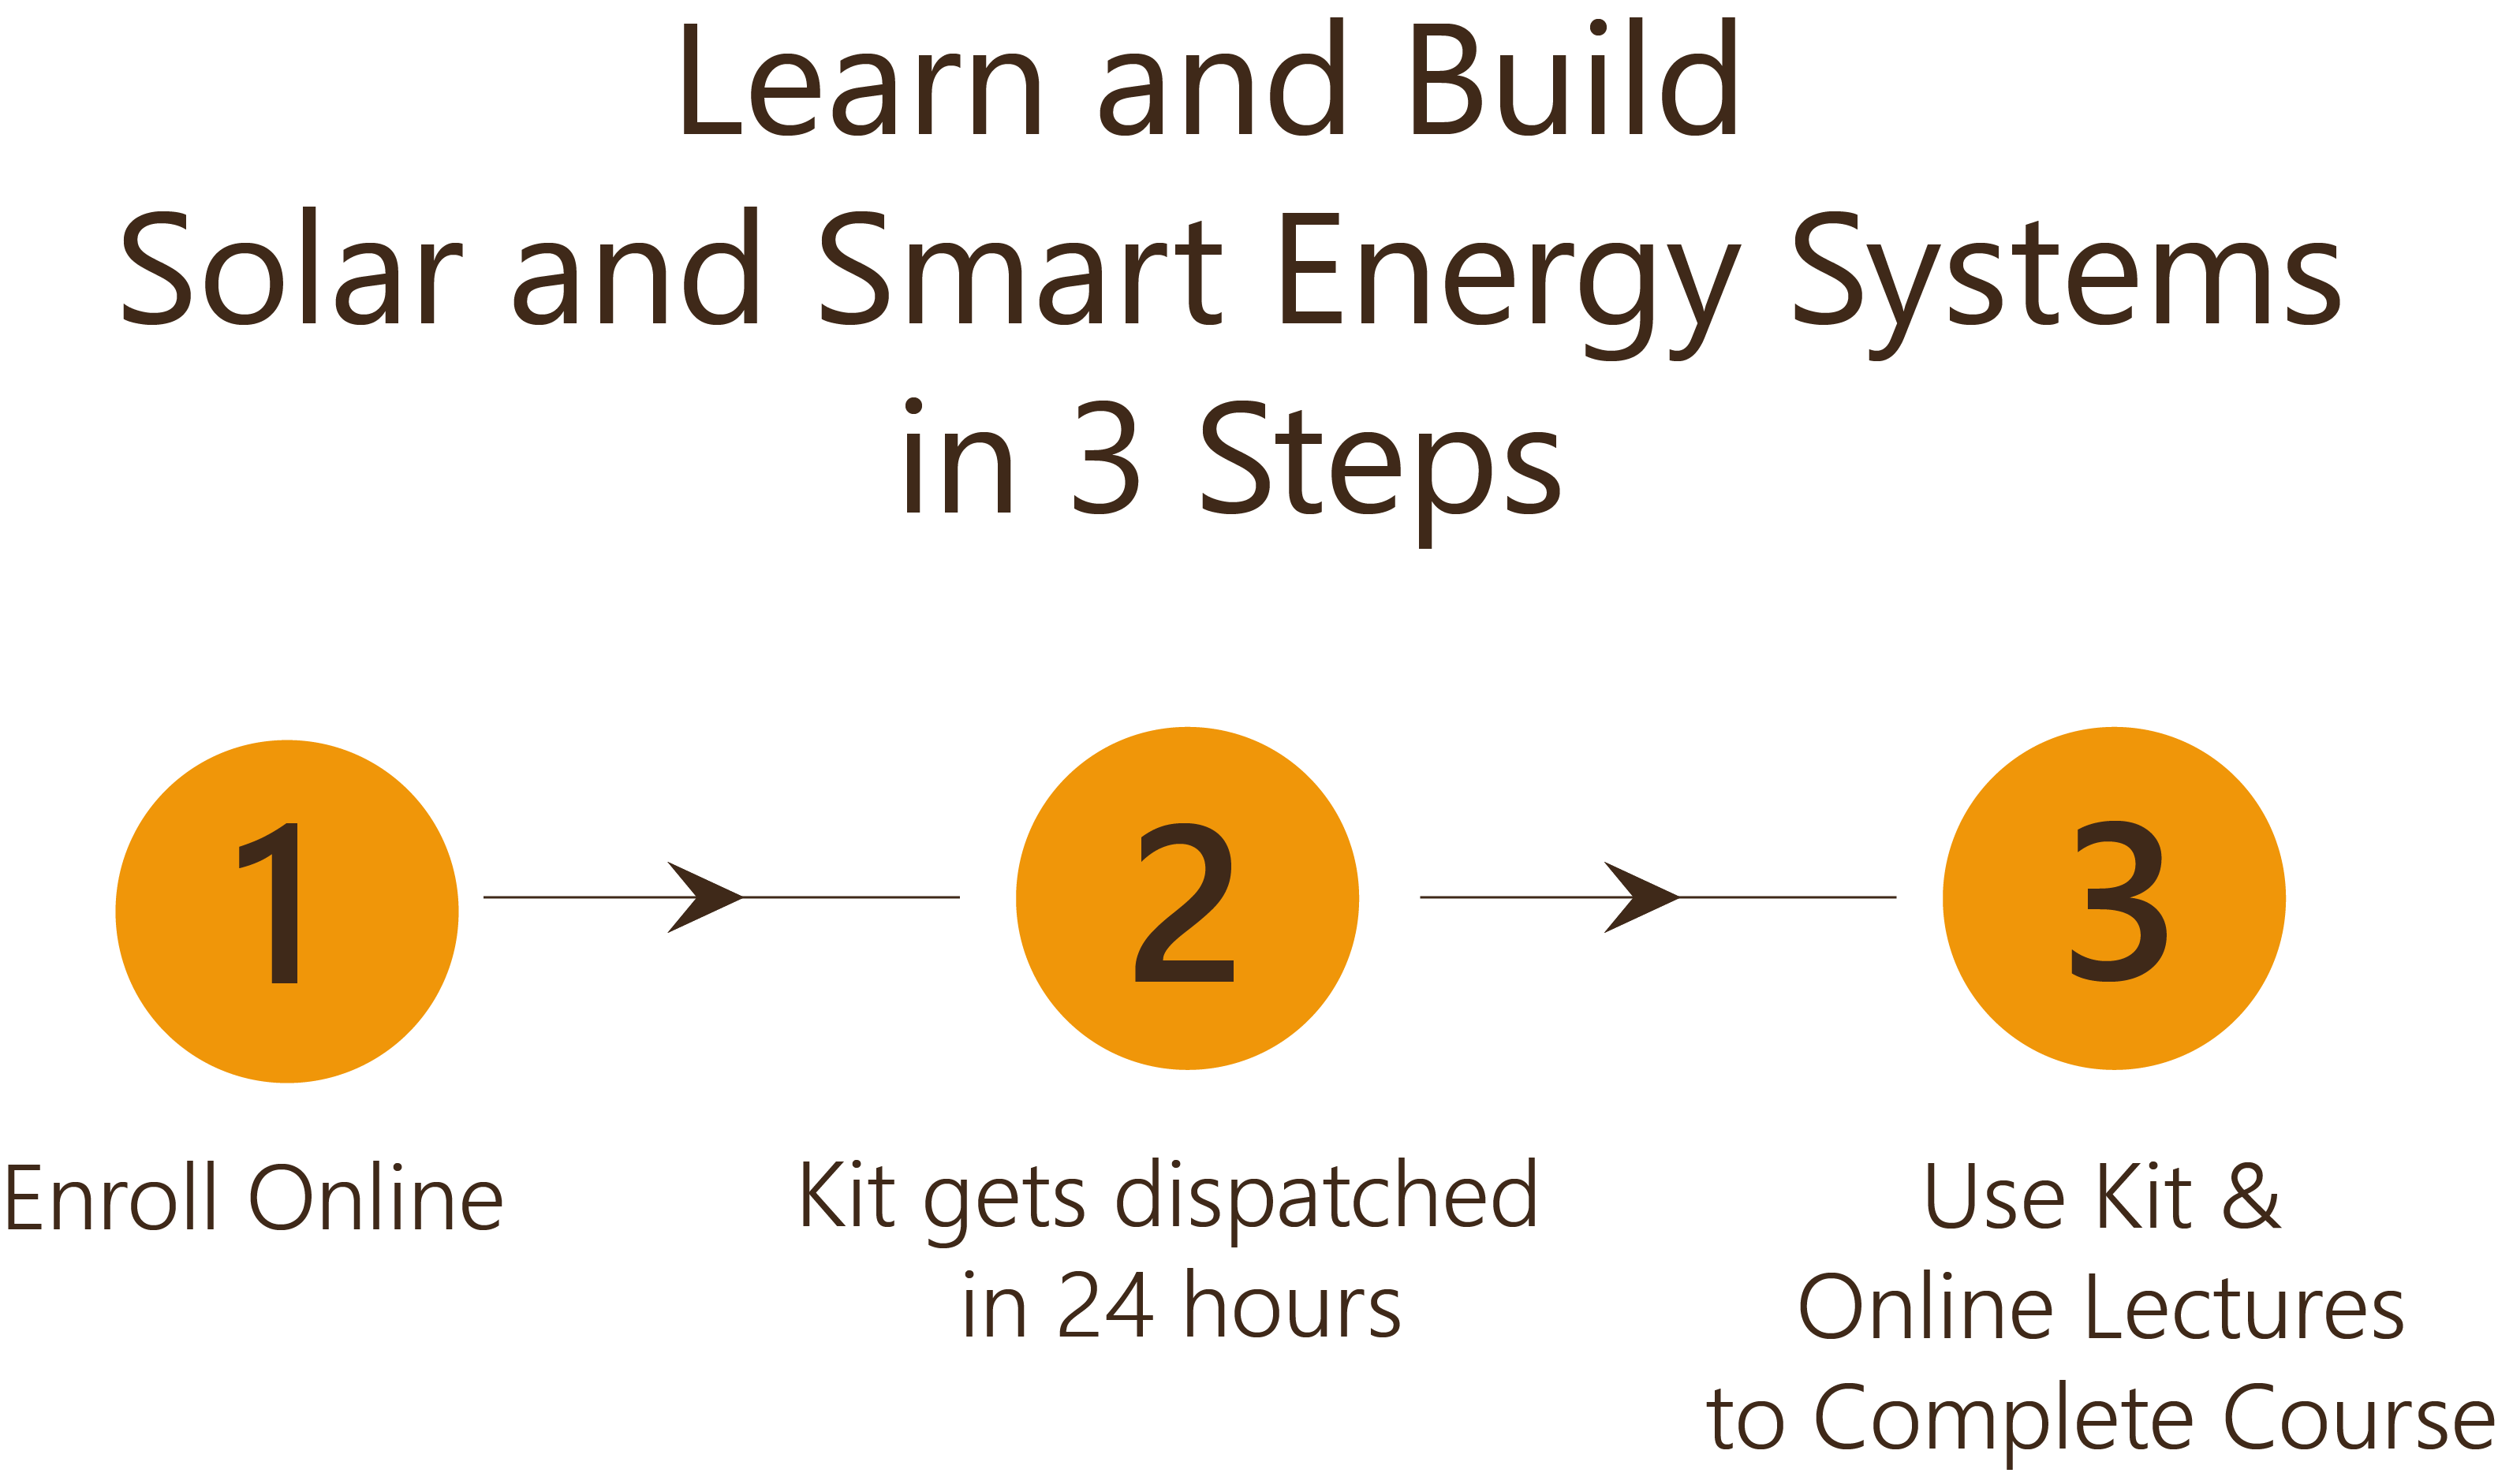 Learn and Build Solar and Smart Energy Systems in 3 Steps